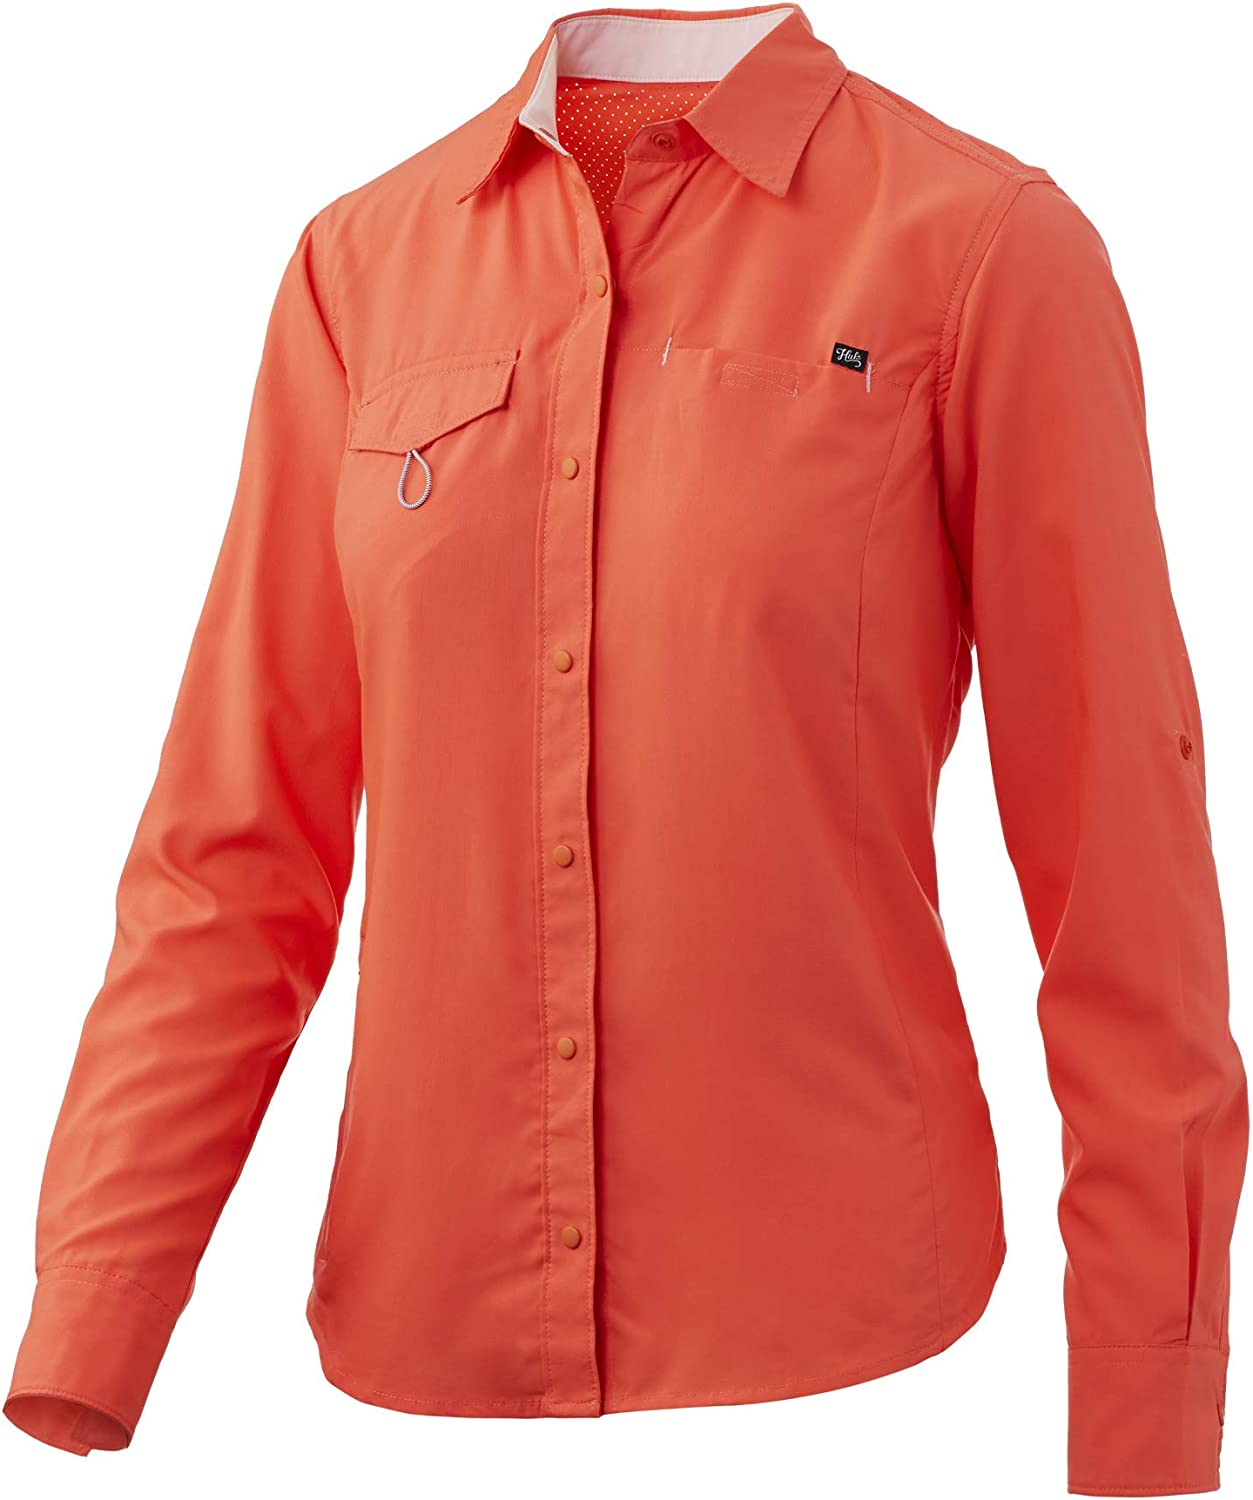 HUK Women's Salty Long Sleeve Fishing Ladies Button Down Performance Shirt with +30 UPF Sun Protection